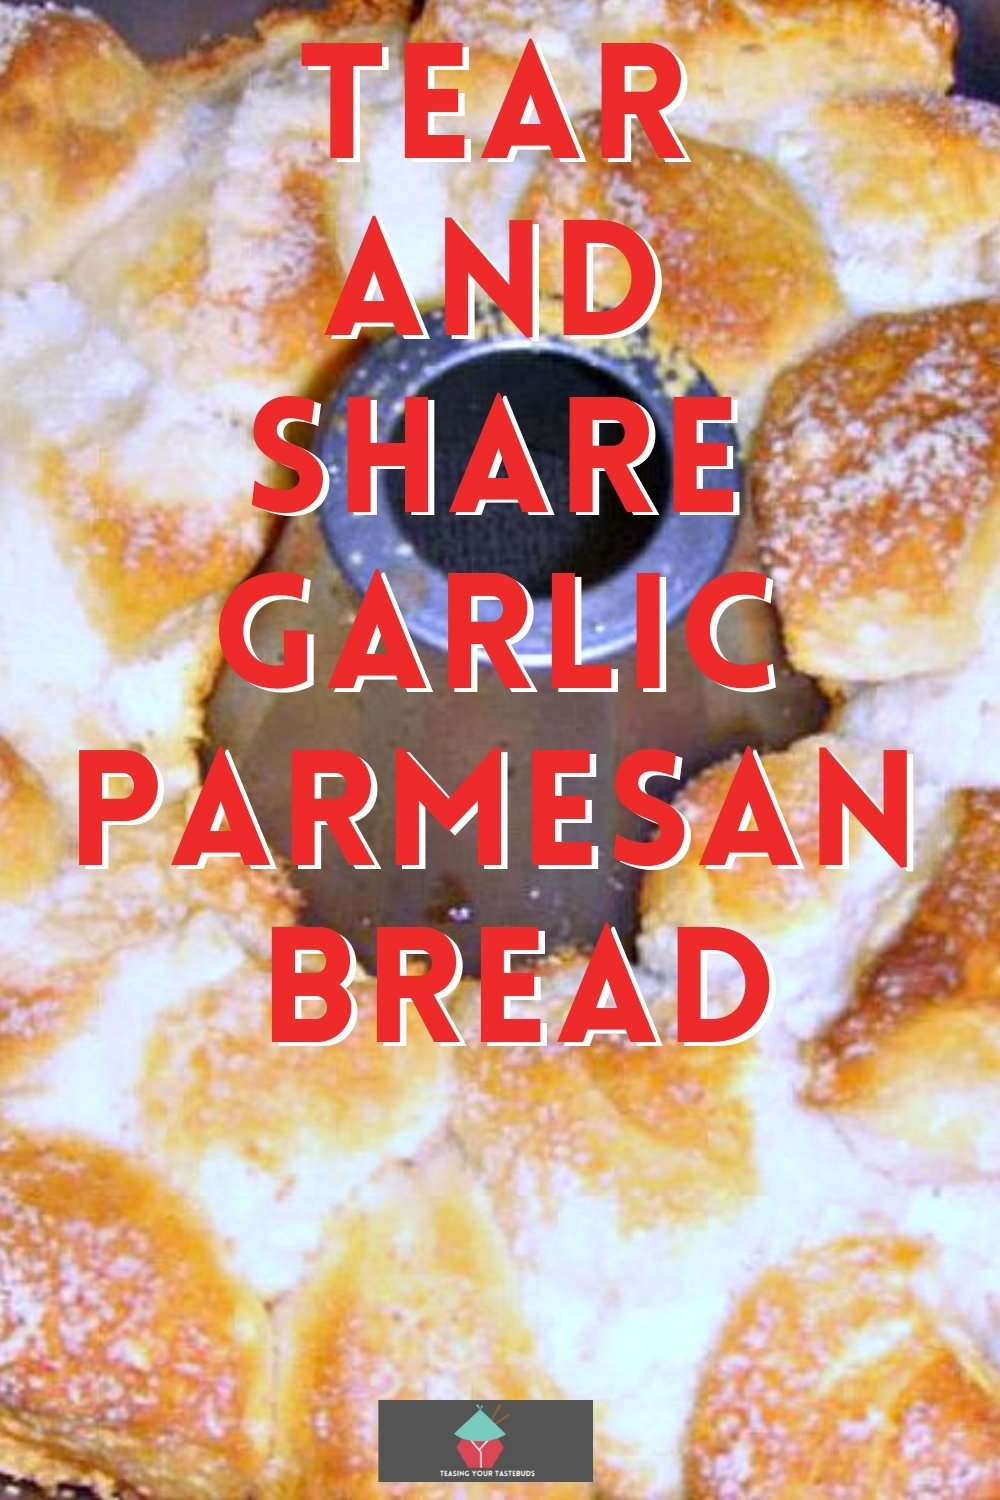 Tear and share garlic parmesan bread, loaded with cheese and garlic, using refrigerated biscuits, baked in a bundt pan. A perfect side dish to share at a party